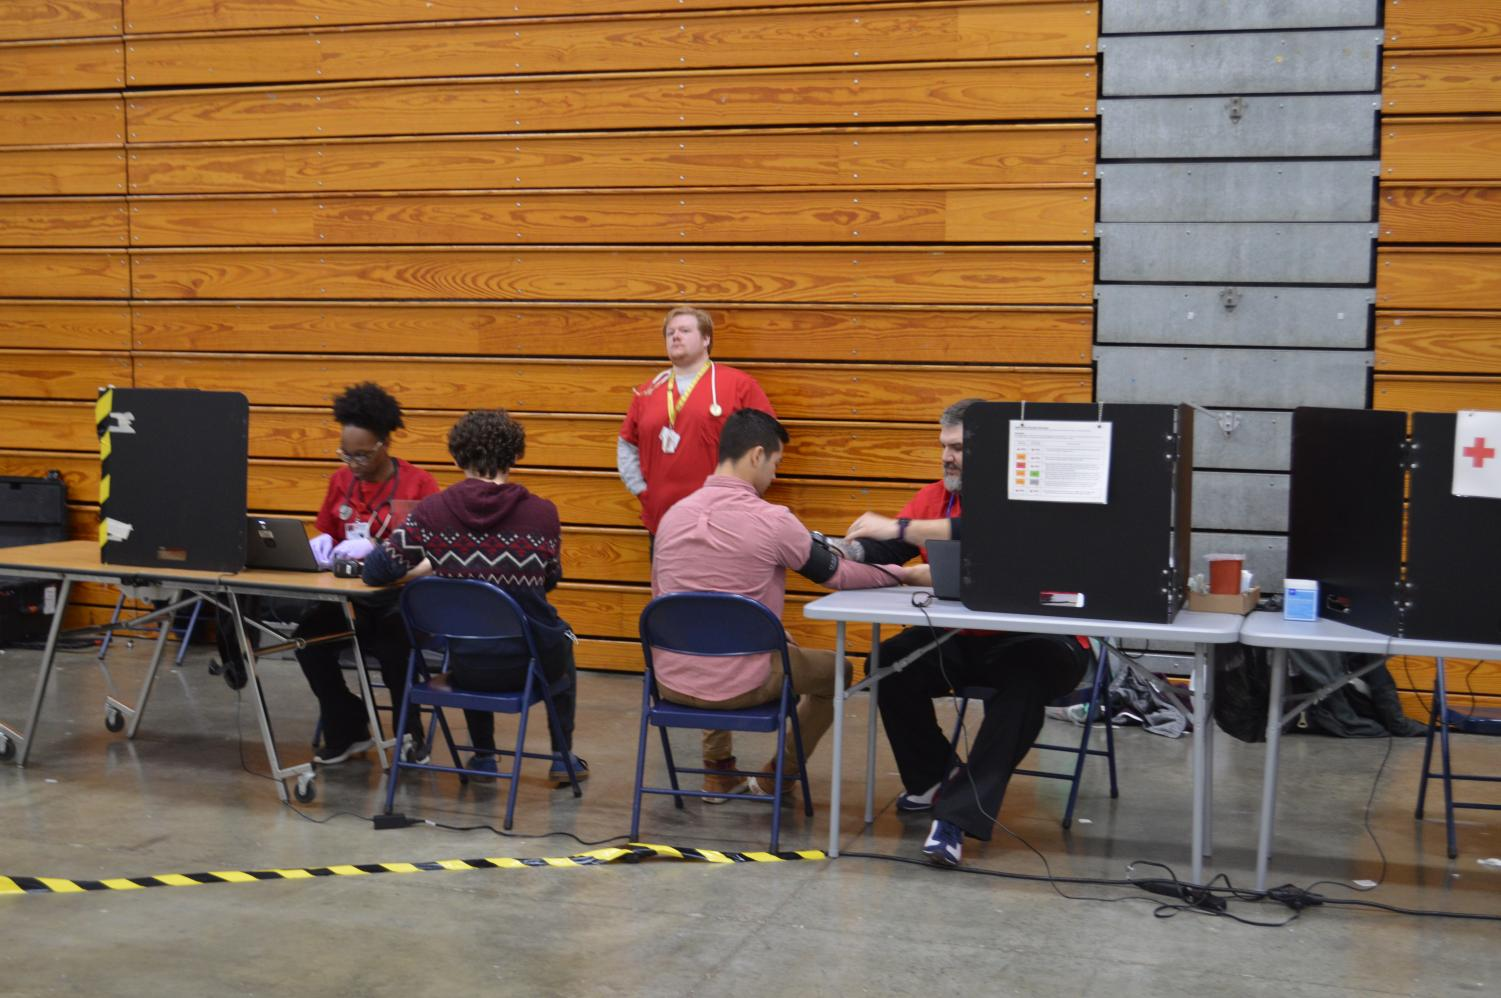 Students+are+getting+their+blood+pressure+taken+so+that+they+can+donate+blood.